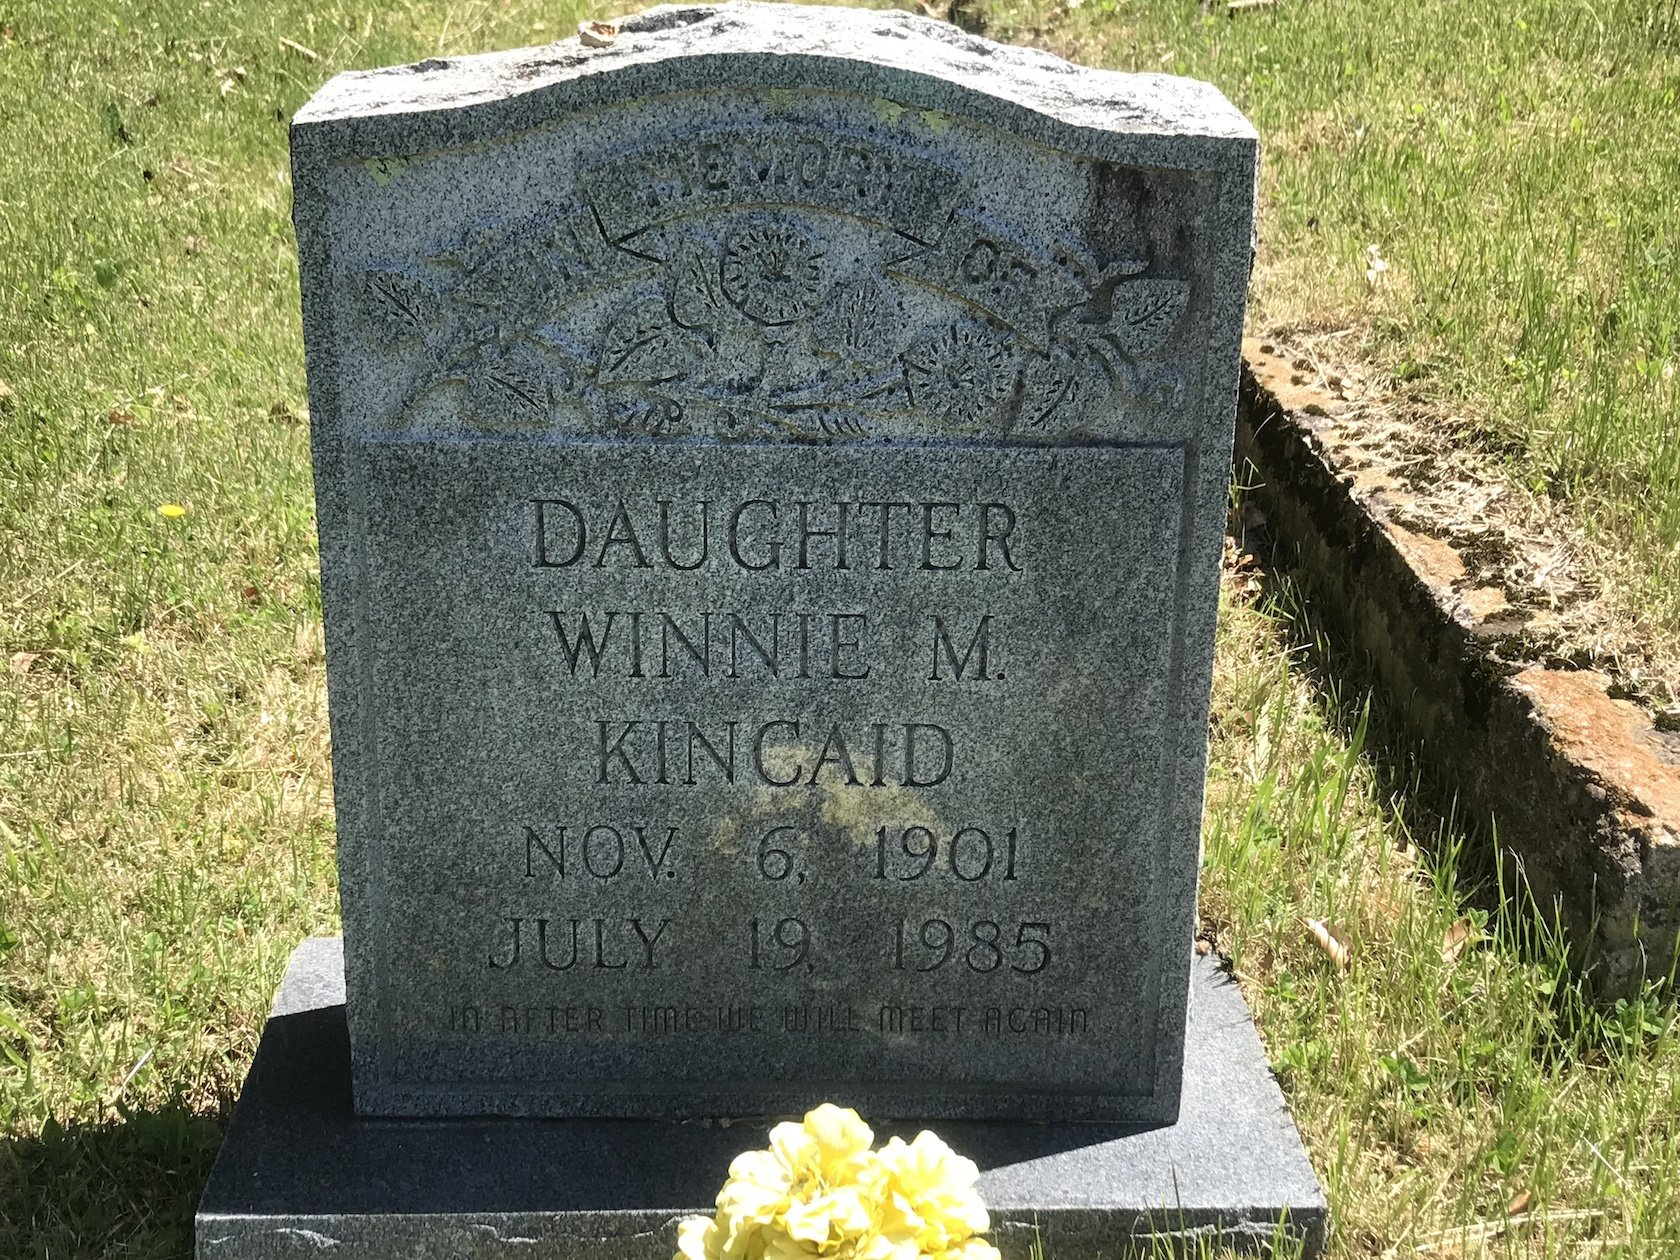 The grave of Winnie Kincaid, the woman who wrote the above documents.